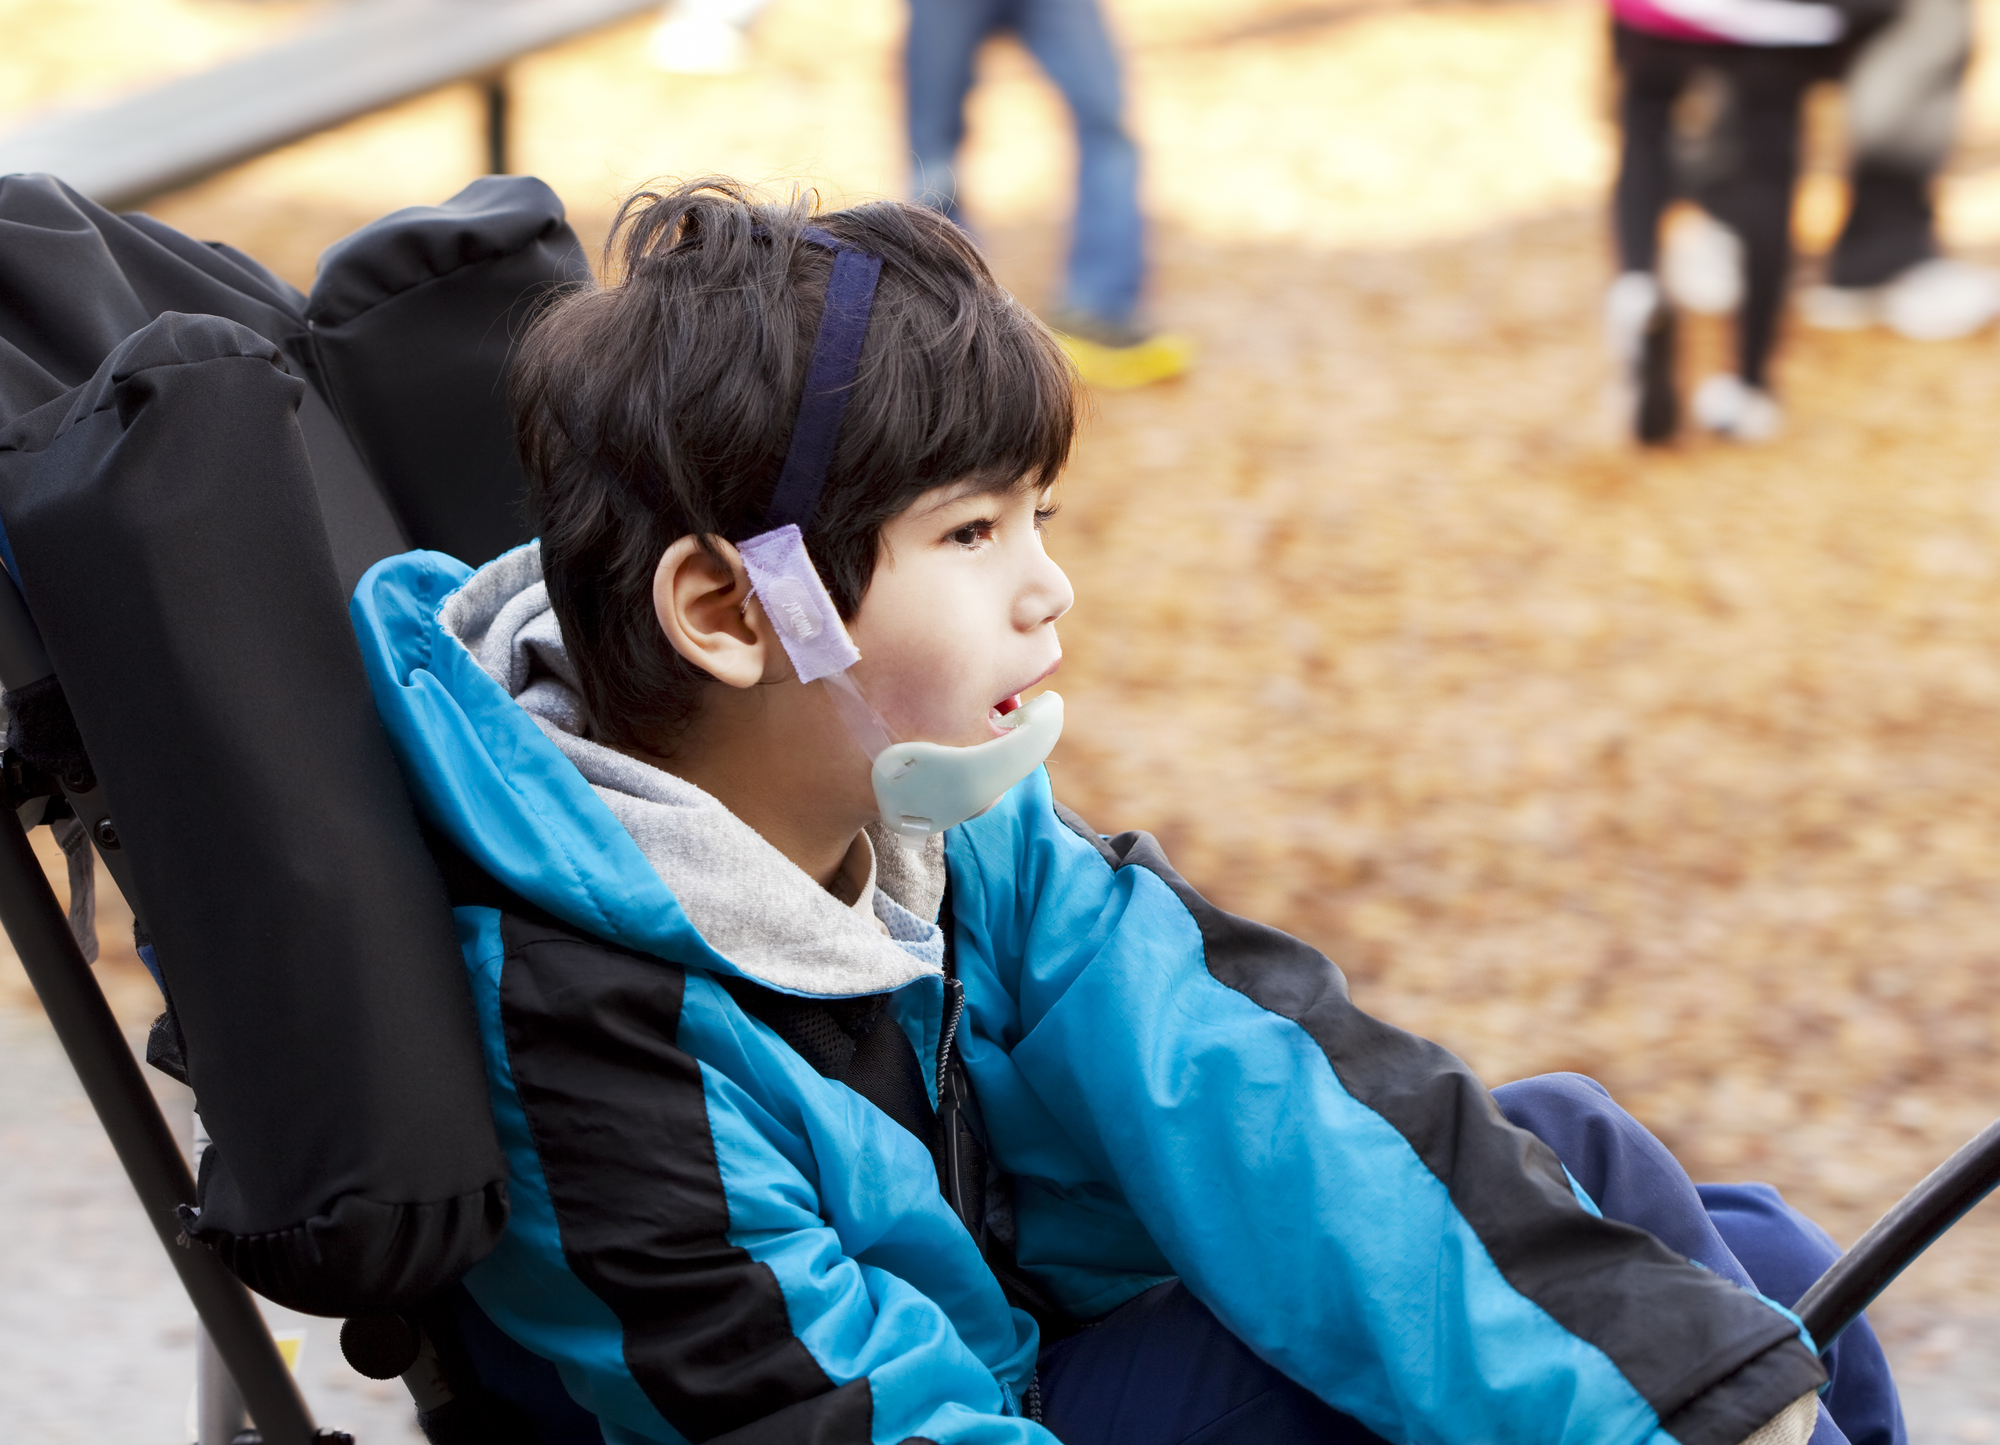 oregon birth injury lawyers know the causes of cerebral palsy dystonic cerebral palsy